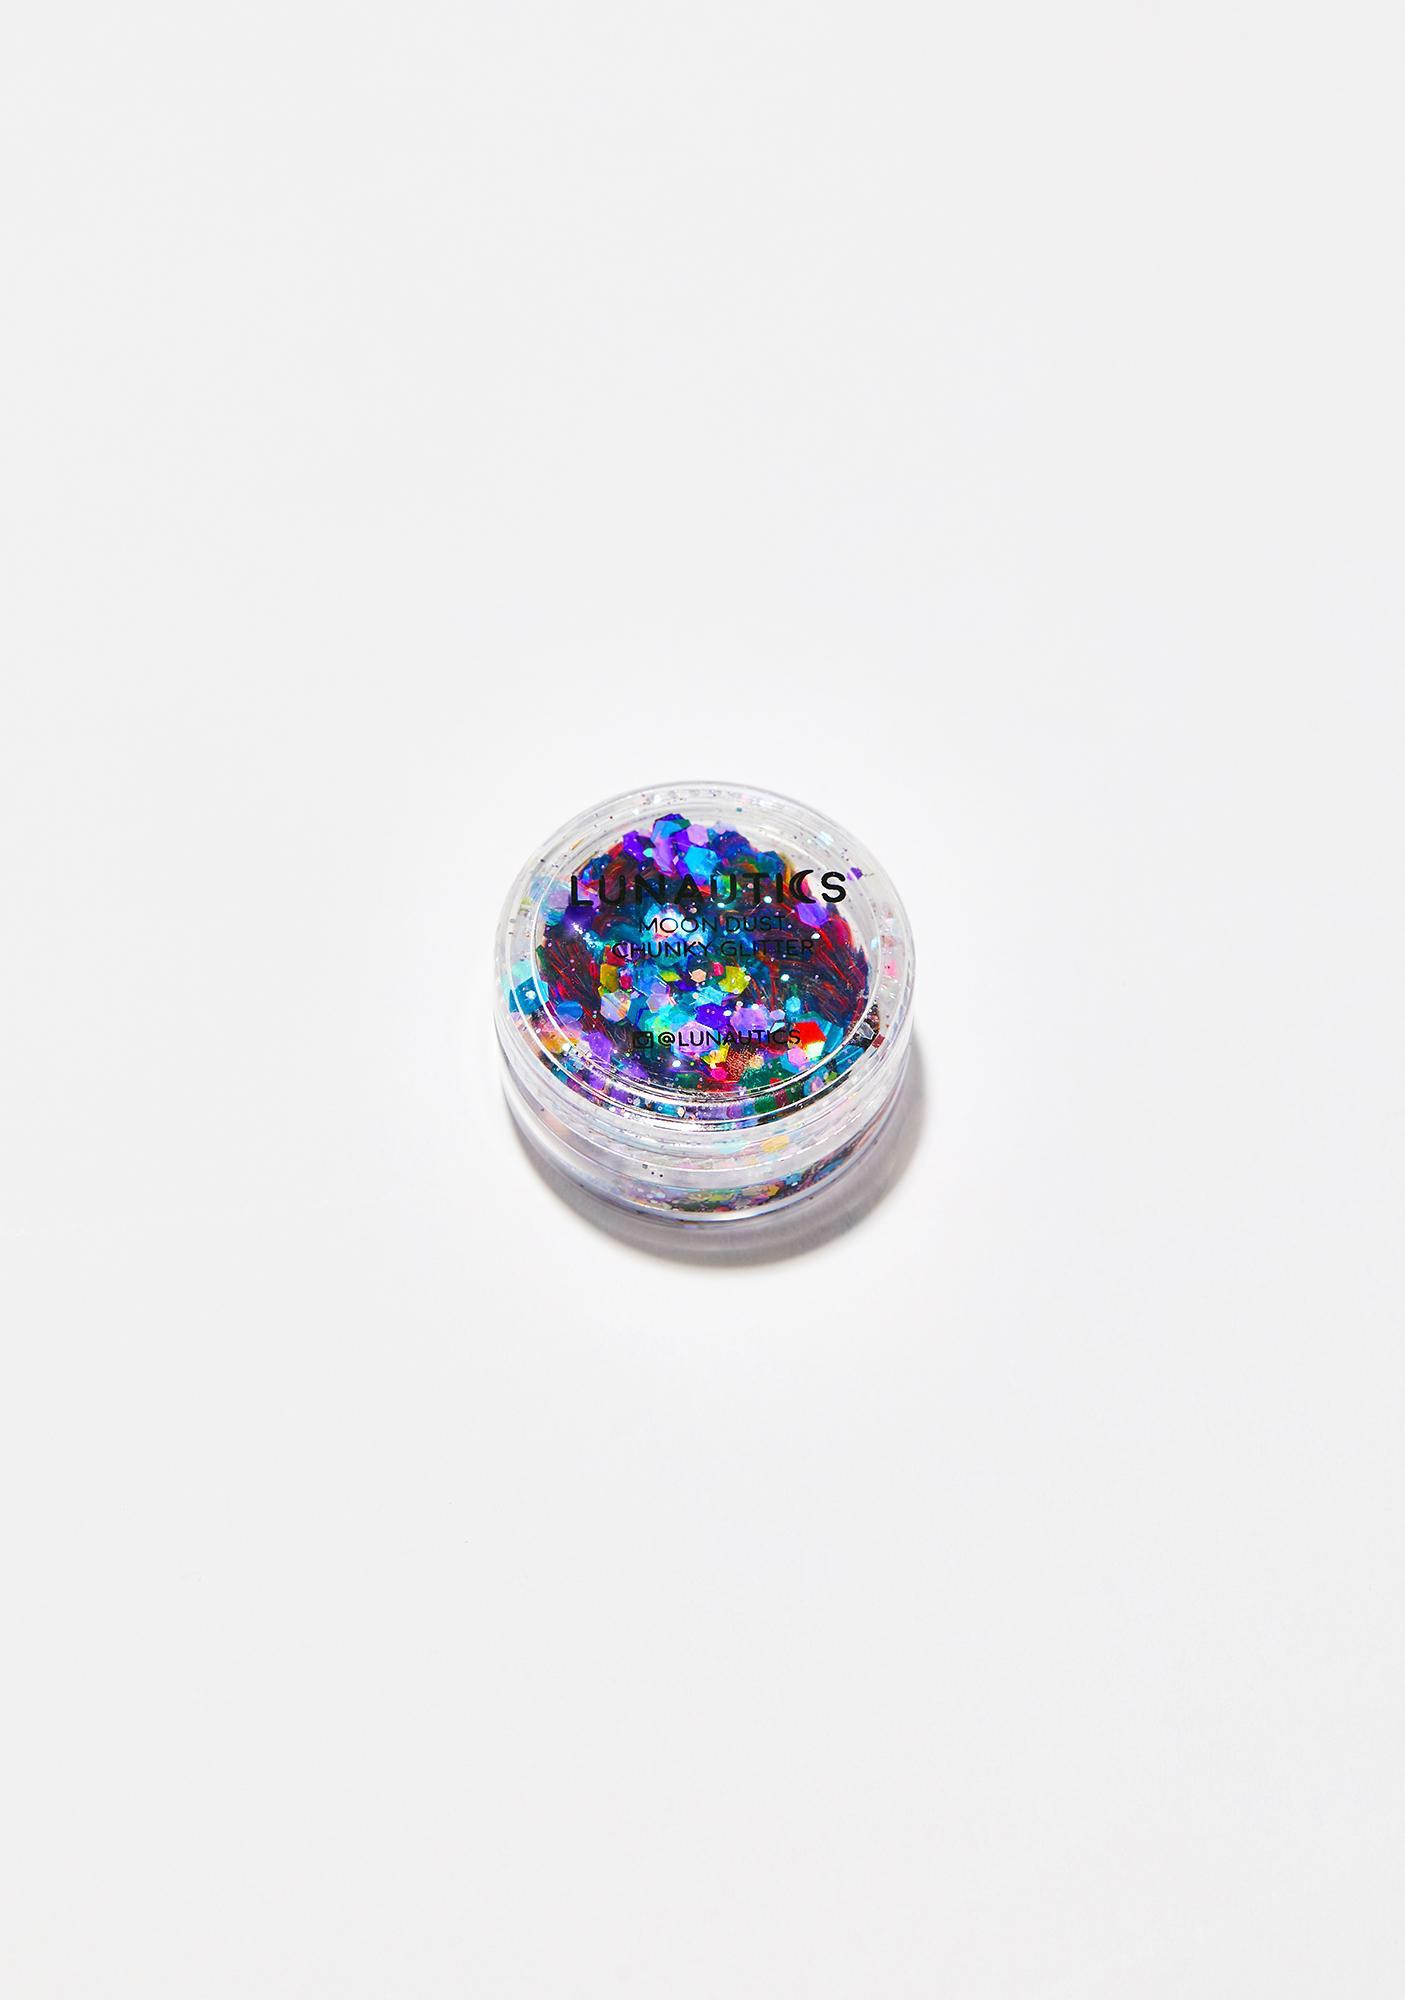 Lunautics Prism Moon Dust Glitter